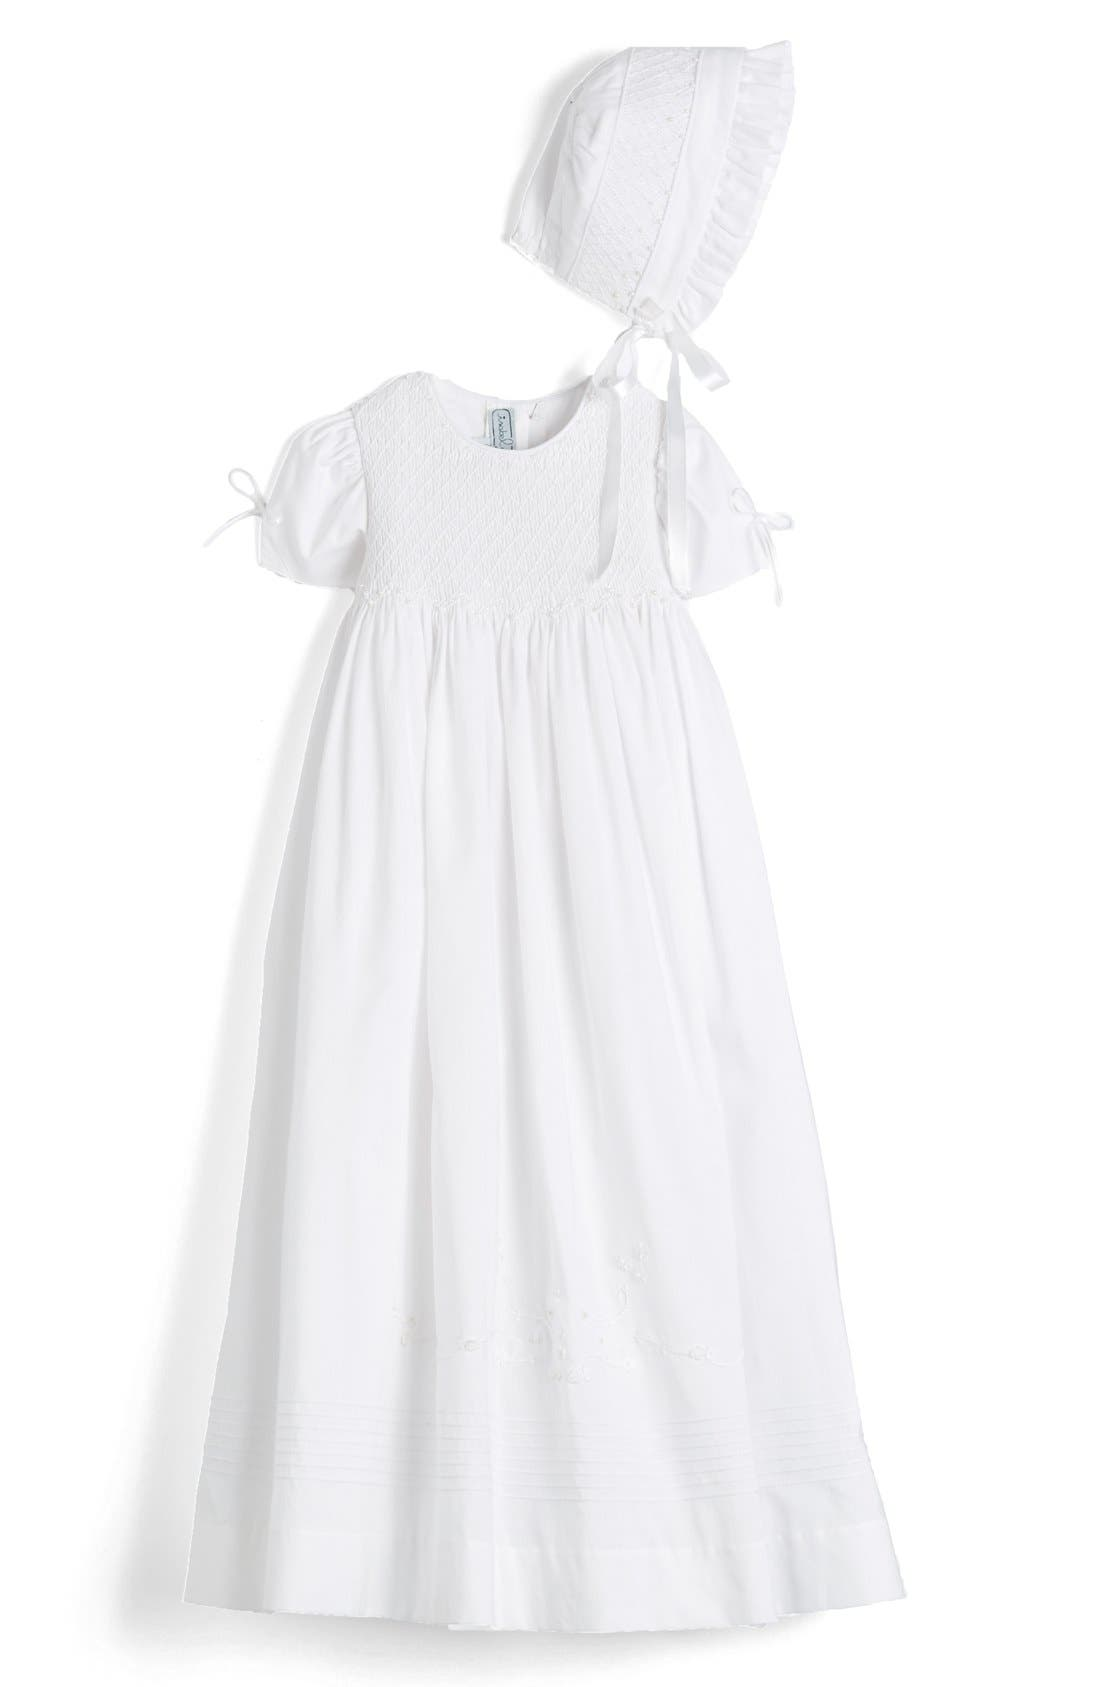 ISABEL GARRETON 'Pearls' Christening Gown & Bonnet